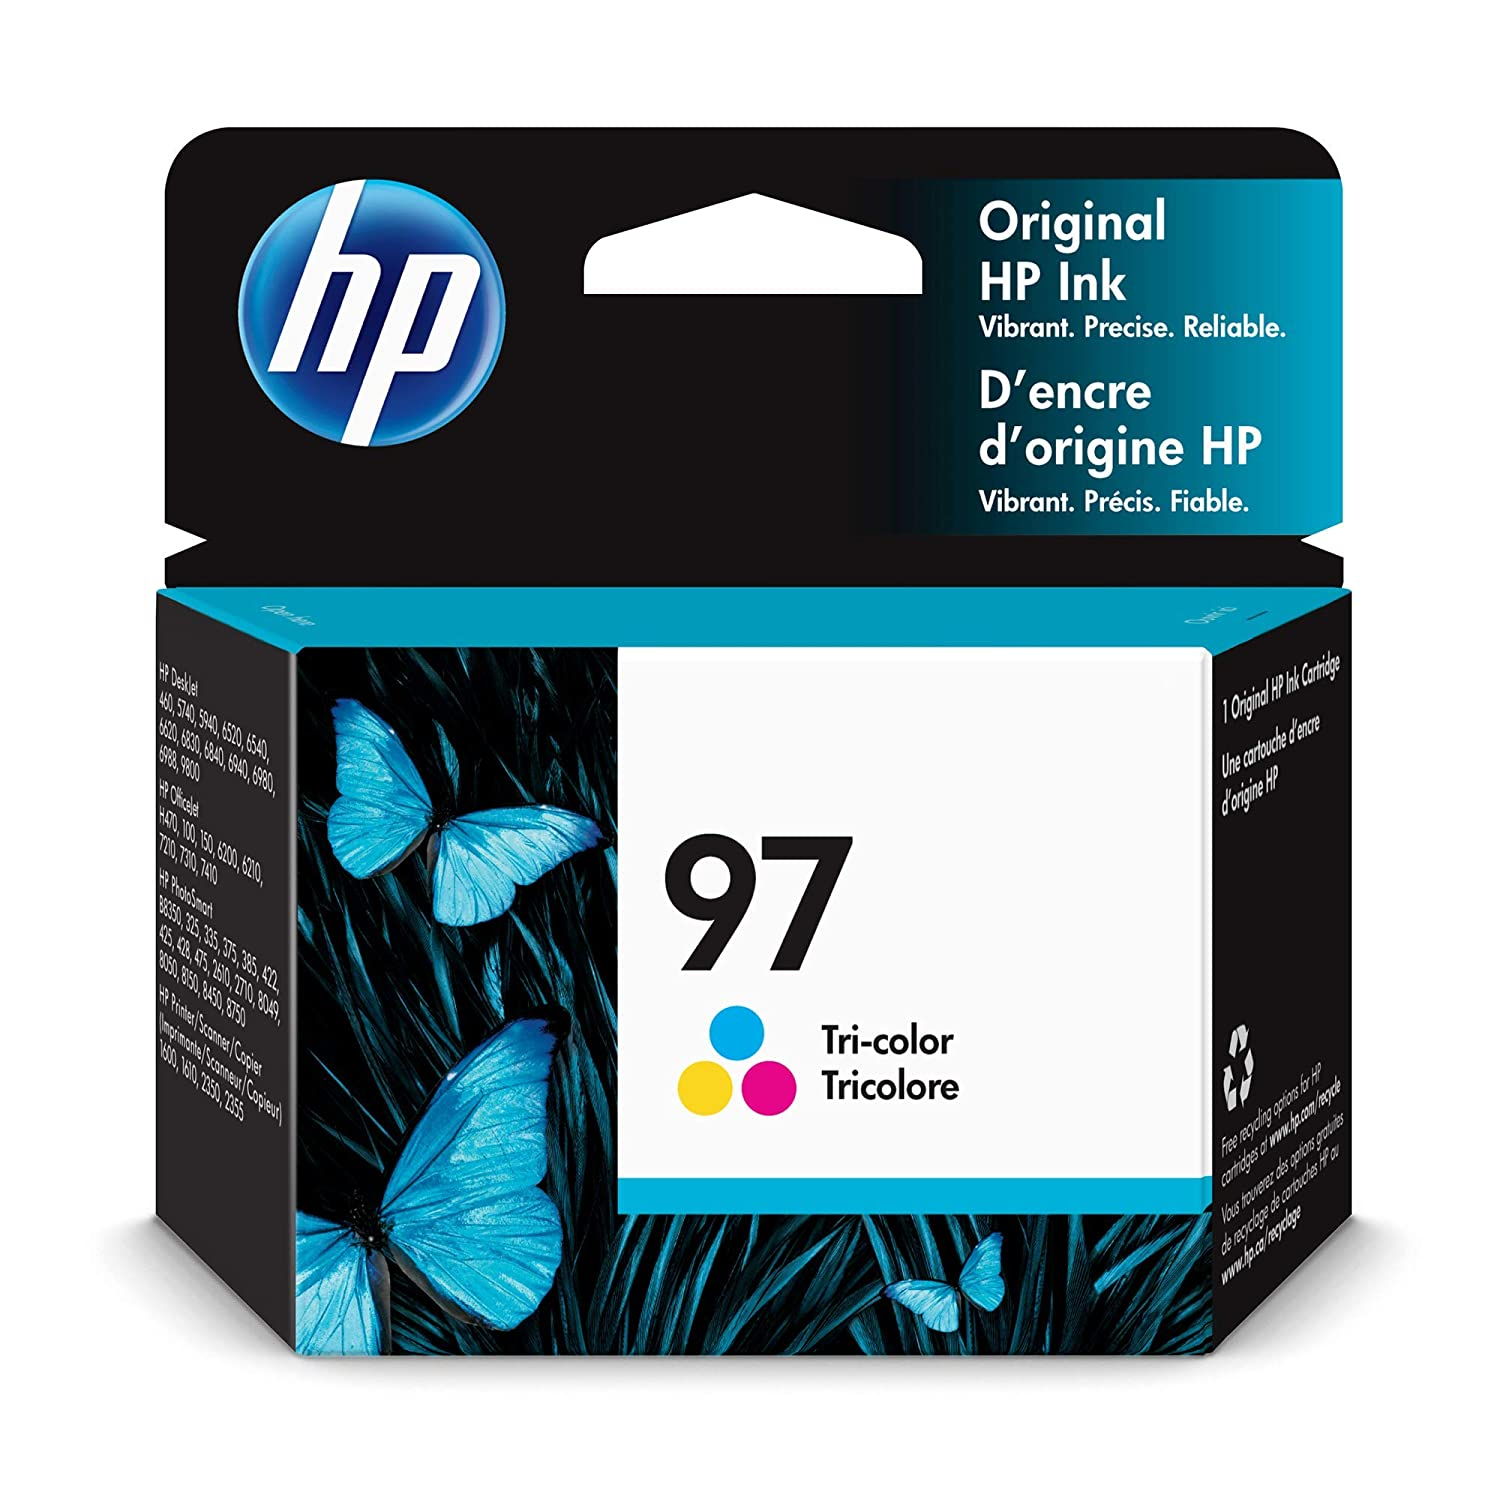 HP 97 Tri-color Ink Cartridge (C9363WN) for HP Deskjet 460 6830 6840 6940 6988 9800 HP Officejet 100 150 H470 7210 7310 7410 HP Photosmart 335 375 385 422 425 428 475 2575 8049 8050 8150 8450 8750